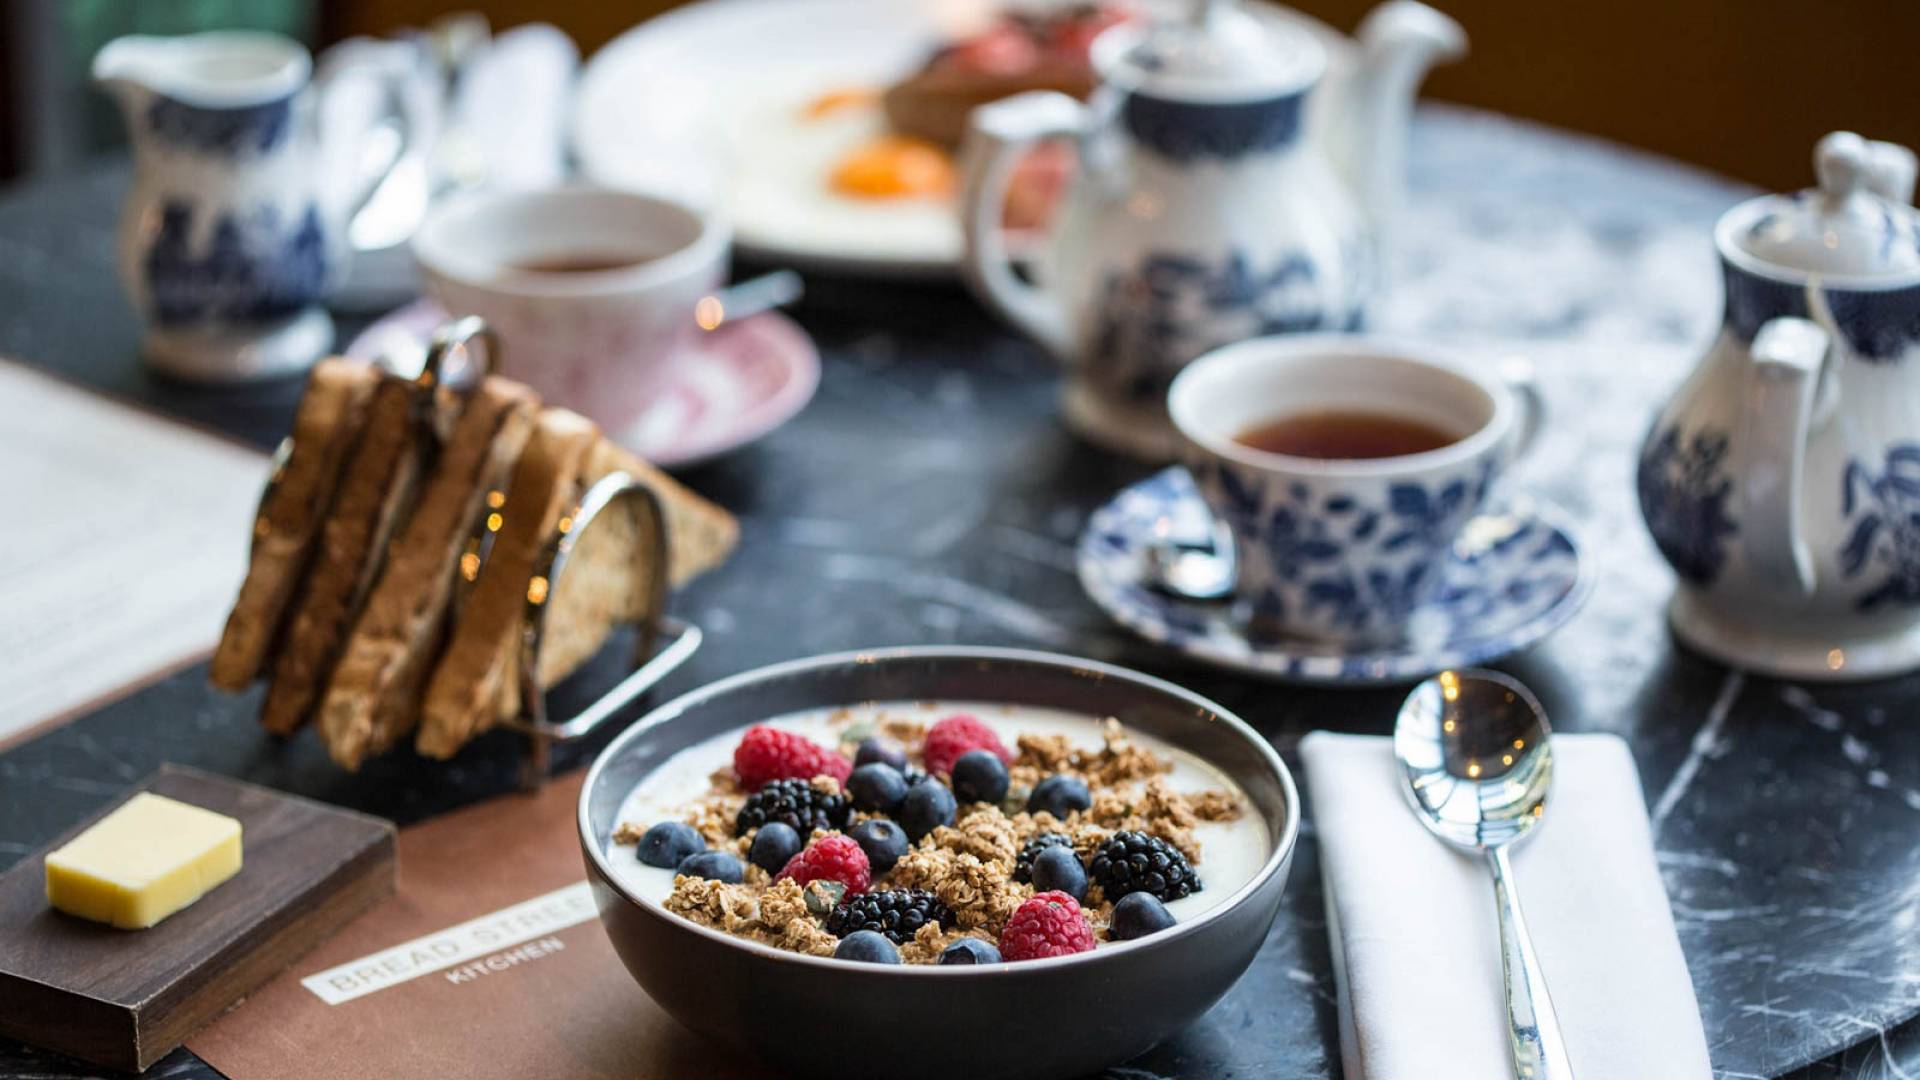 4 BSk Breakfast Brunch Yoghurt toasted granola and berries